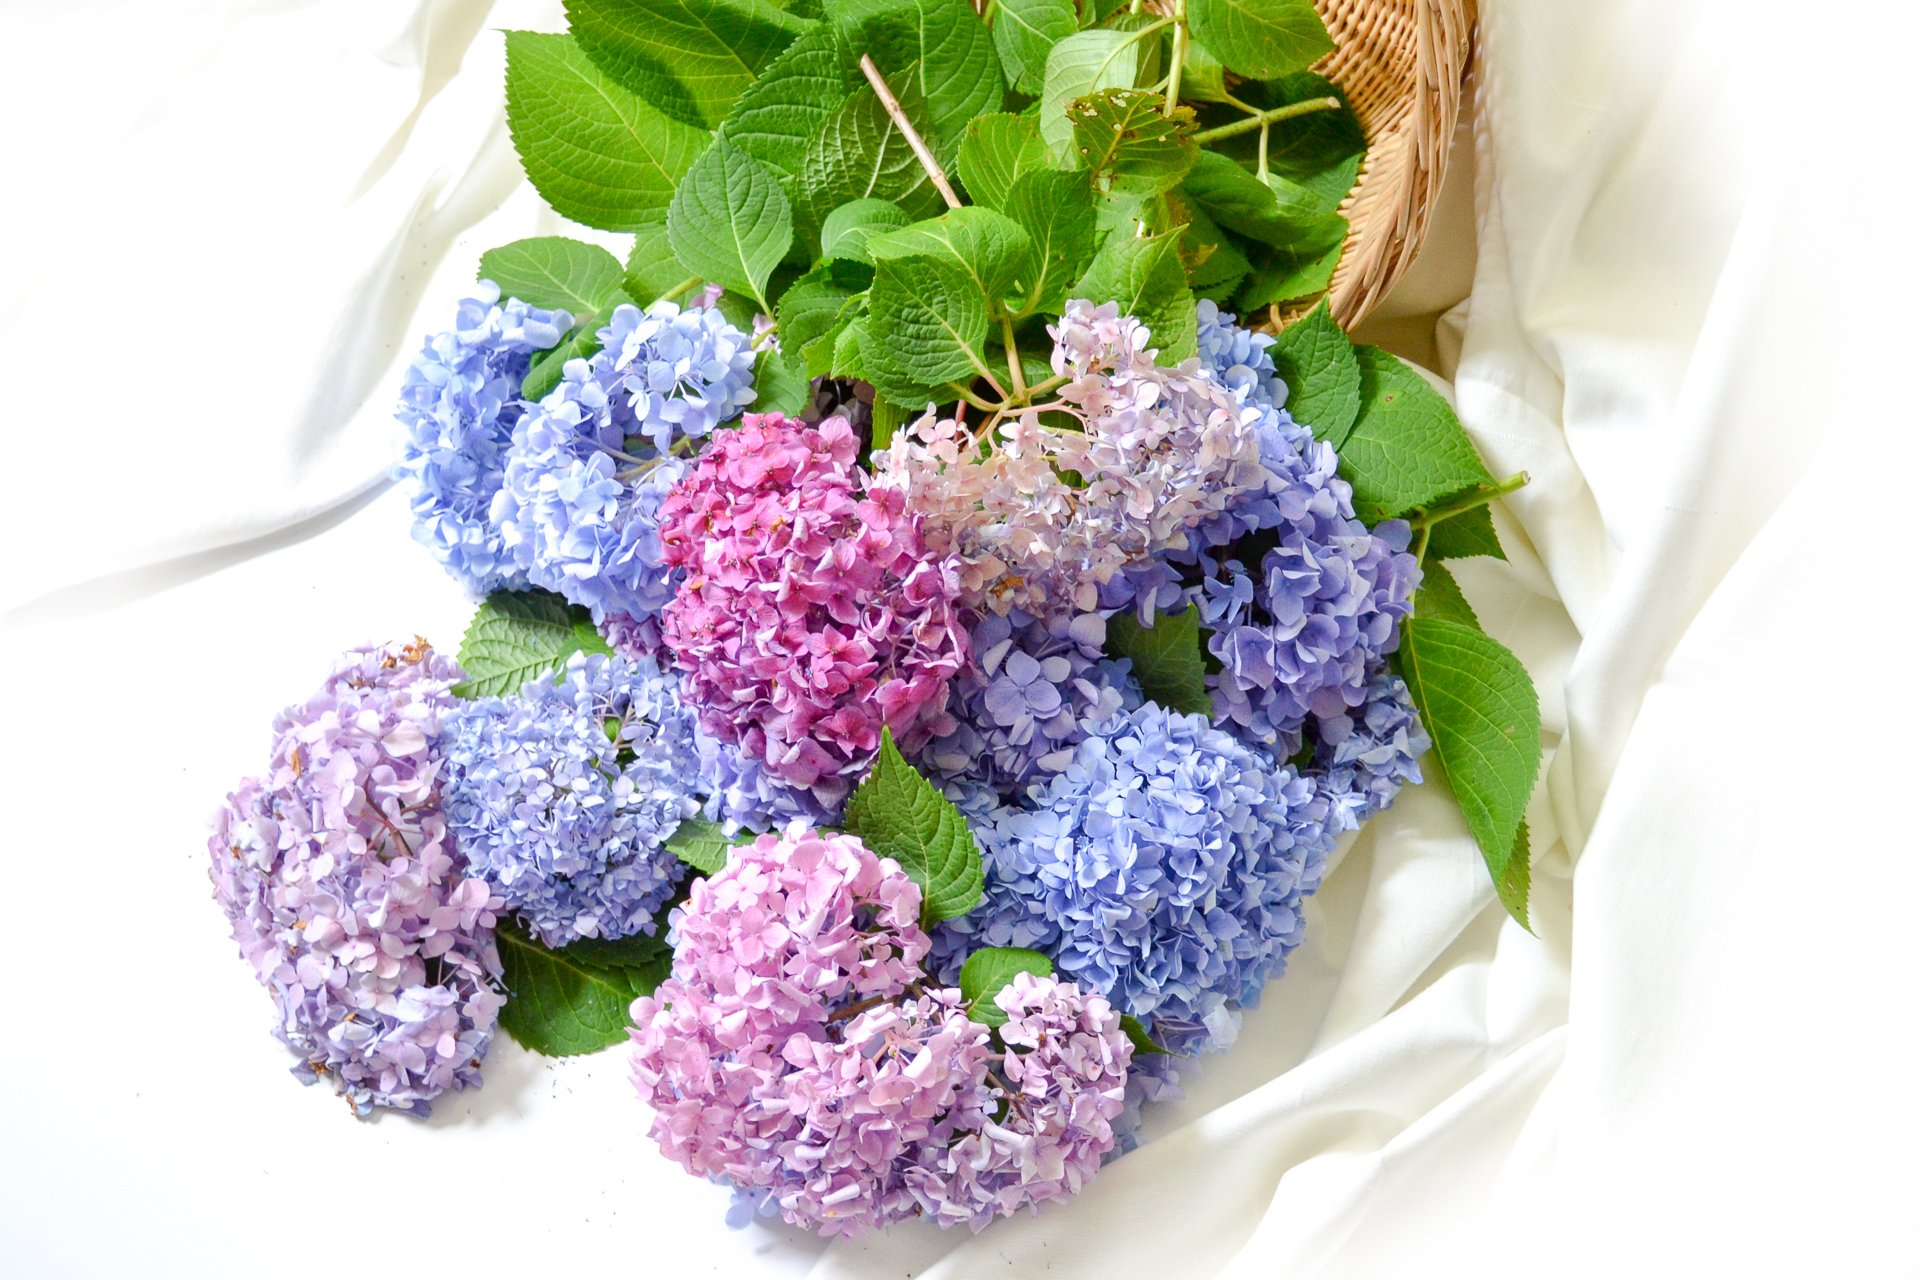 Here's an array of hydrangea blooms against a white background in a basket.